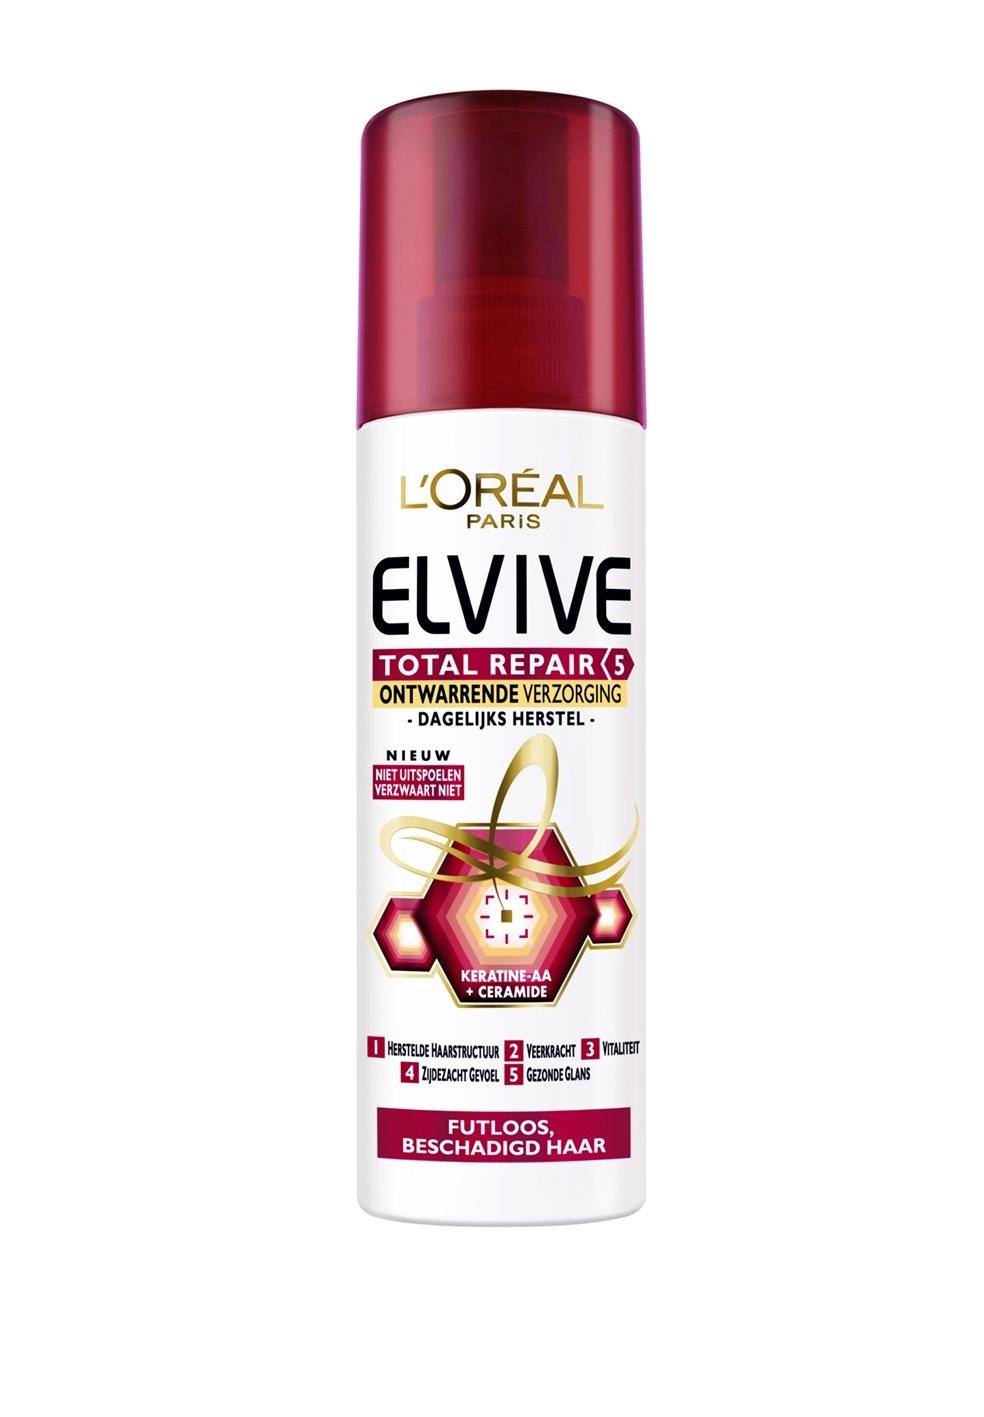 ELSEVE - Spray Capilaire - TOTAL REPAIR 5 - 200ml L' Oréal